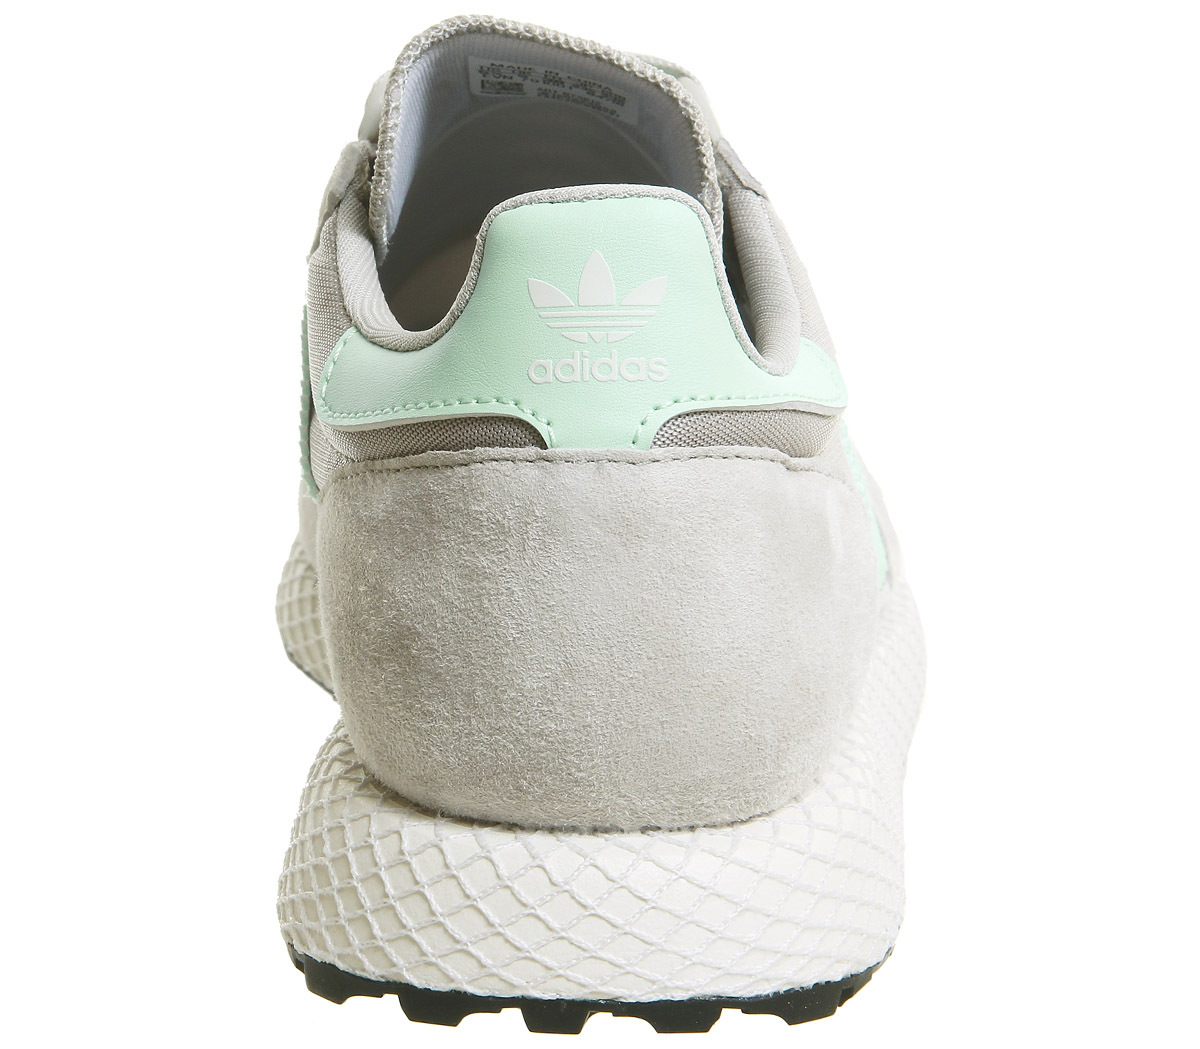 Womens Bdidas Forest Grove Trainers SESBME WHITE BLBCK Trainers Shoes